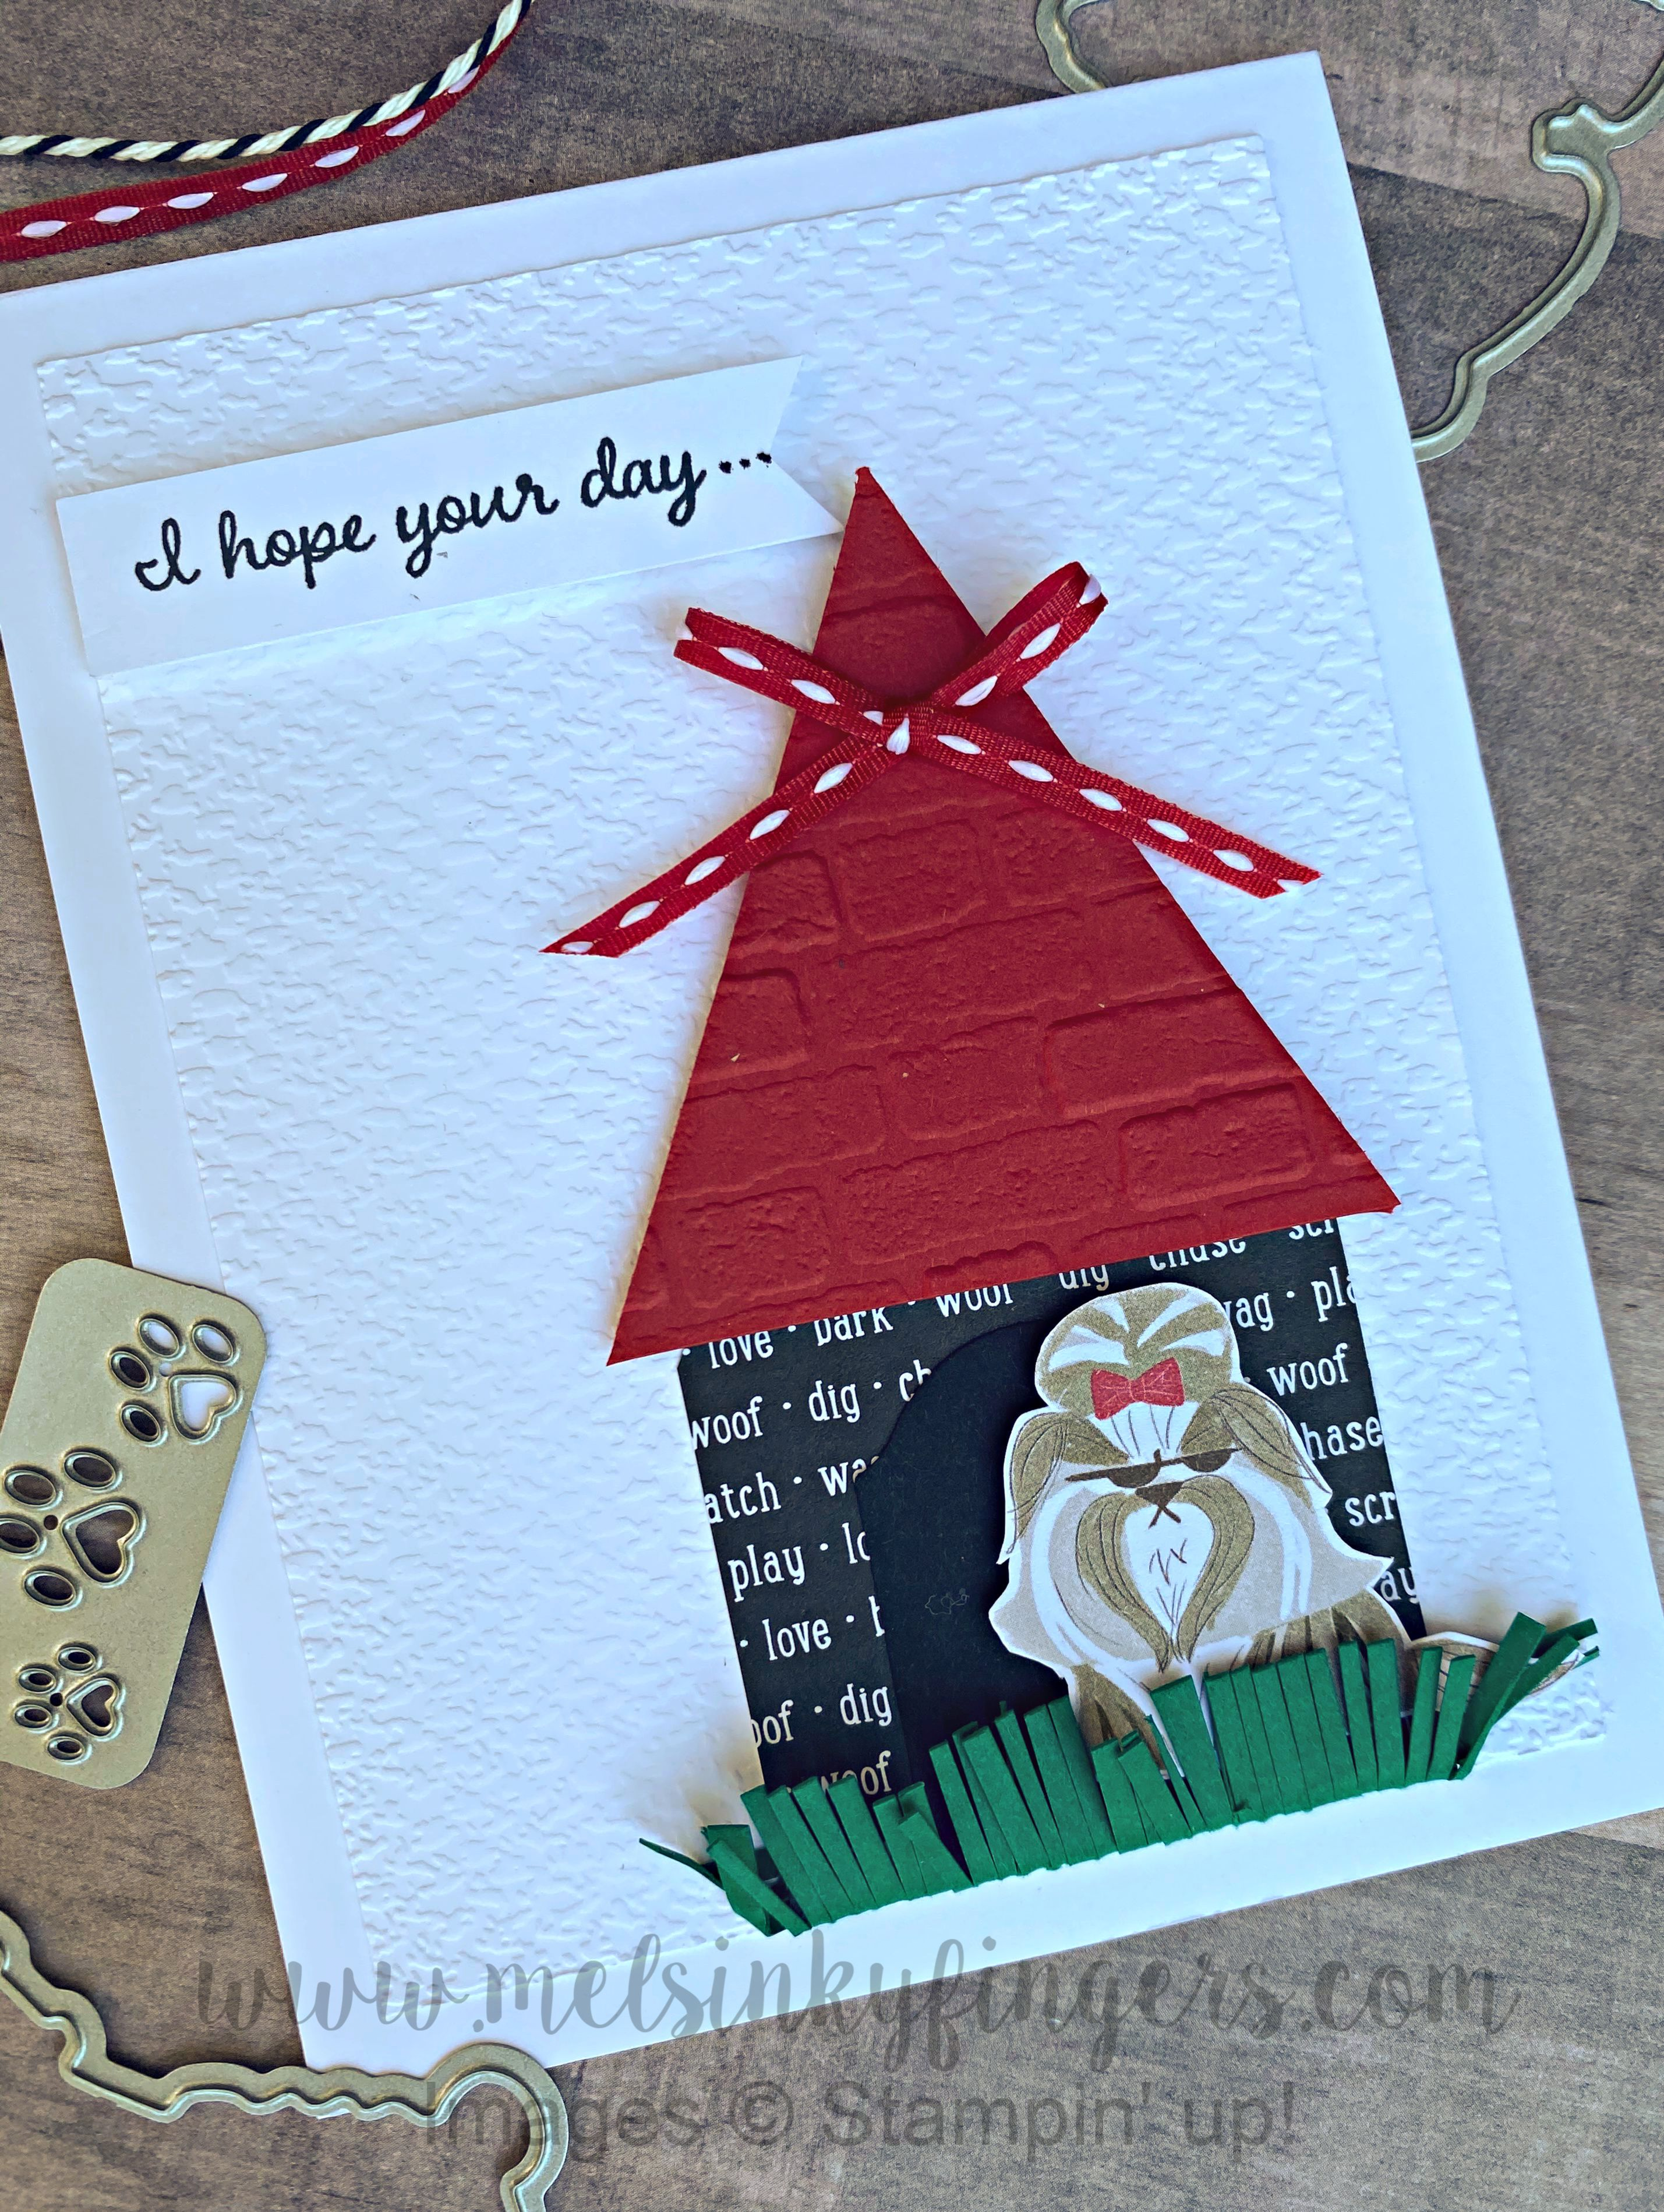 In The Doghouse With Playful Pets In 2020 Handmade Cards Diy Pet Suite Cards Handmade